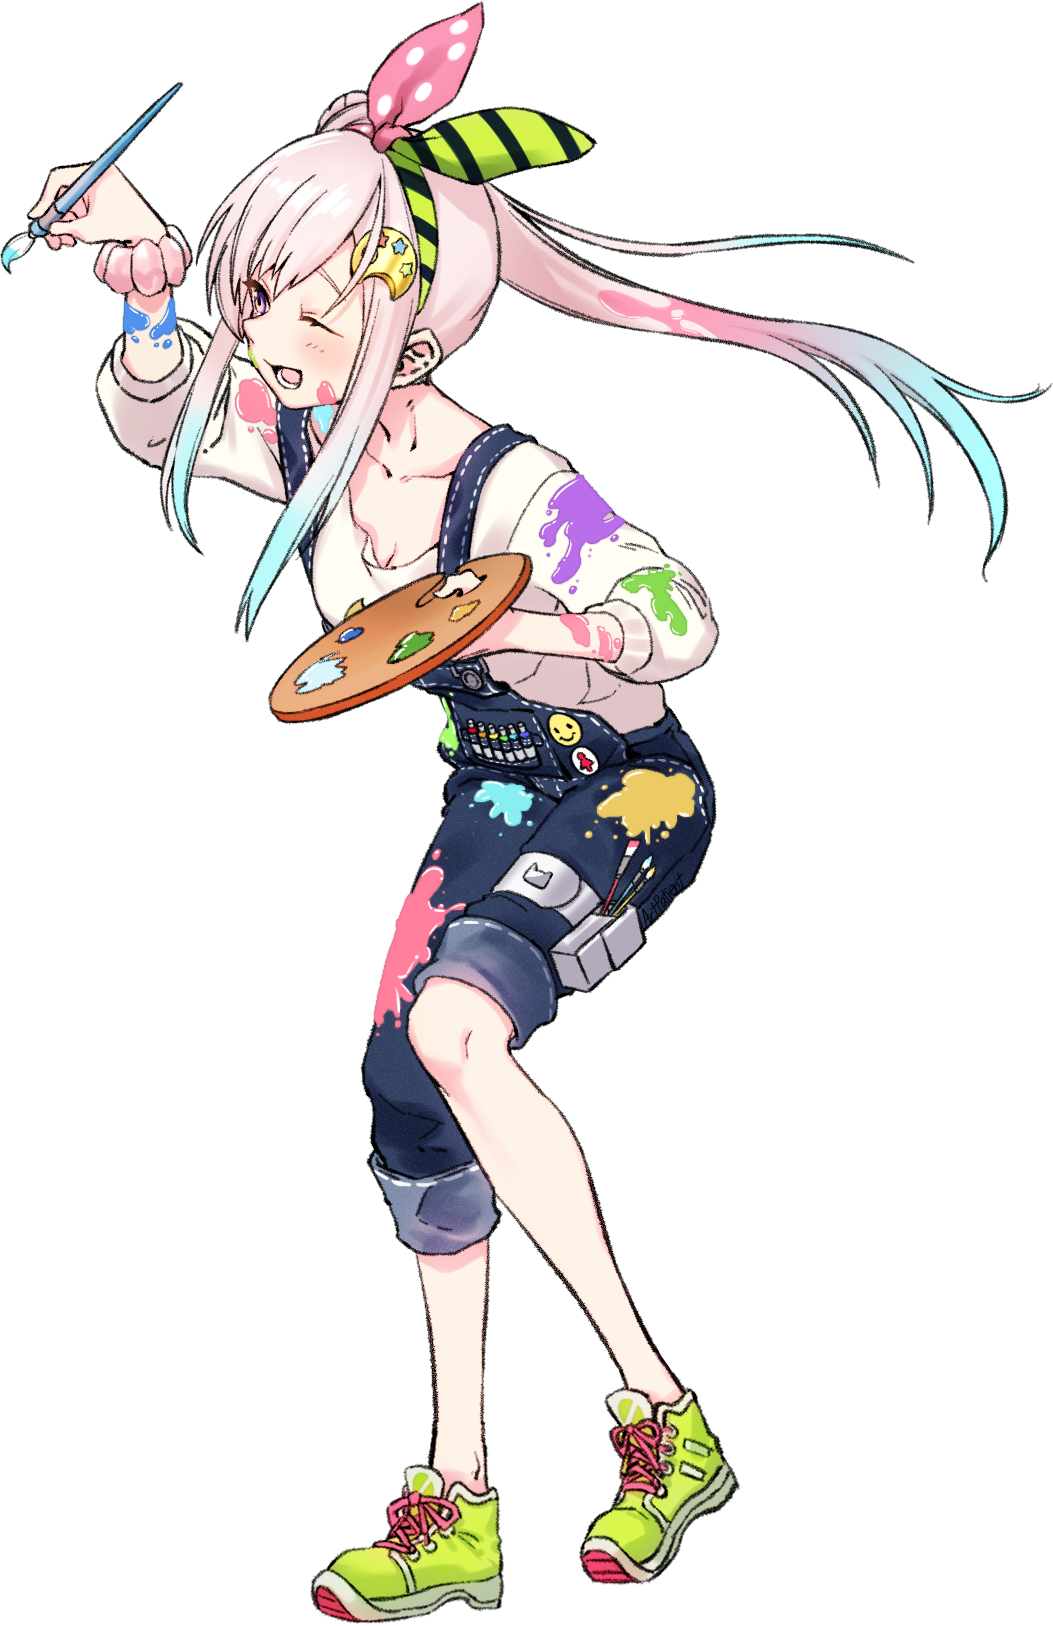 1girl ;d airani_iofifteen art_brush artpatient bangs blue_hair bow_hairband denim full_body gradient_hair hairband highres holding holding_paintbrush hololive hololive_indonesia long_hair long_sleeves looking_away multicolored_hair one_eye_closed open_mouth overalls paint_on_clothes paint_on_face paint_splatter paintbrush palette palette_hair_ornament pants pants_rolled_up pink_hair shirt shoes side_ponytail simple_background smile sneakers solo swept_bangs virtual_youtuber white_background white_shirt yellow_footwear